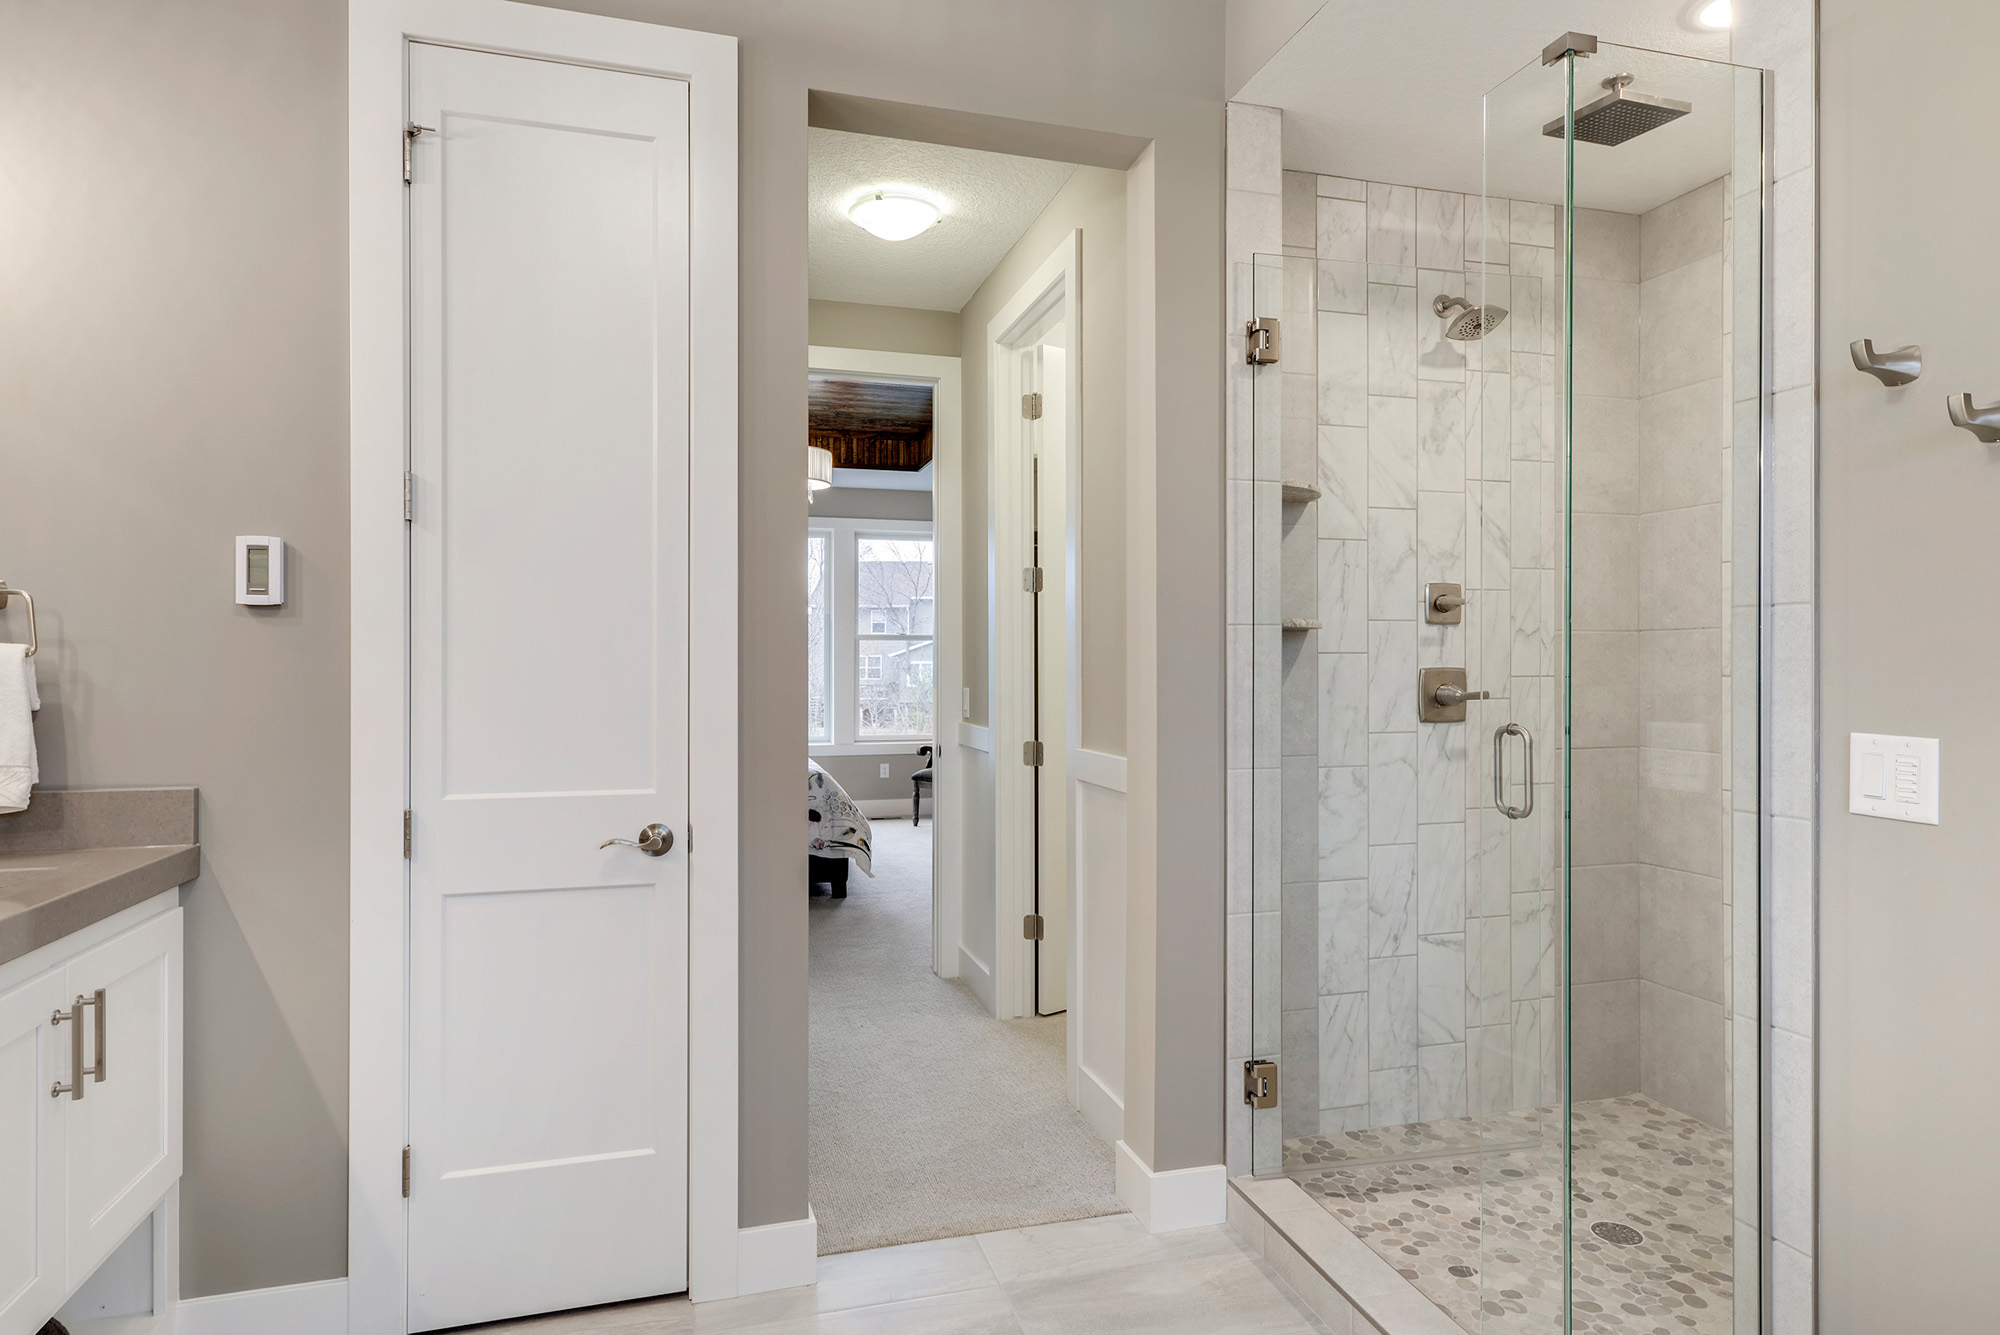 The master bath has a large Walk-in shower